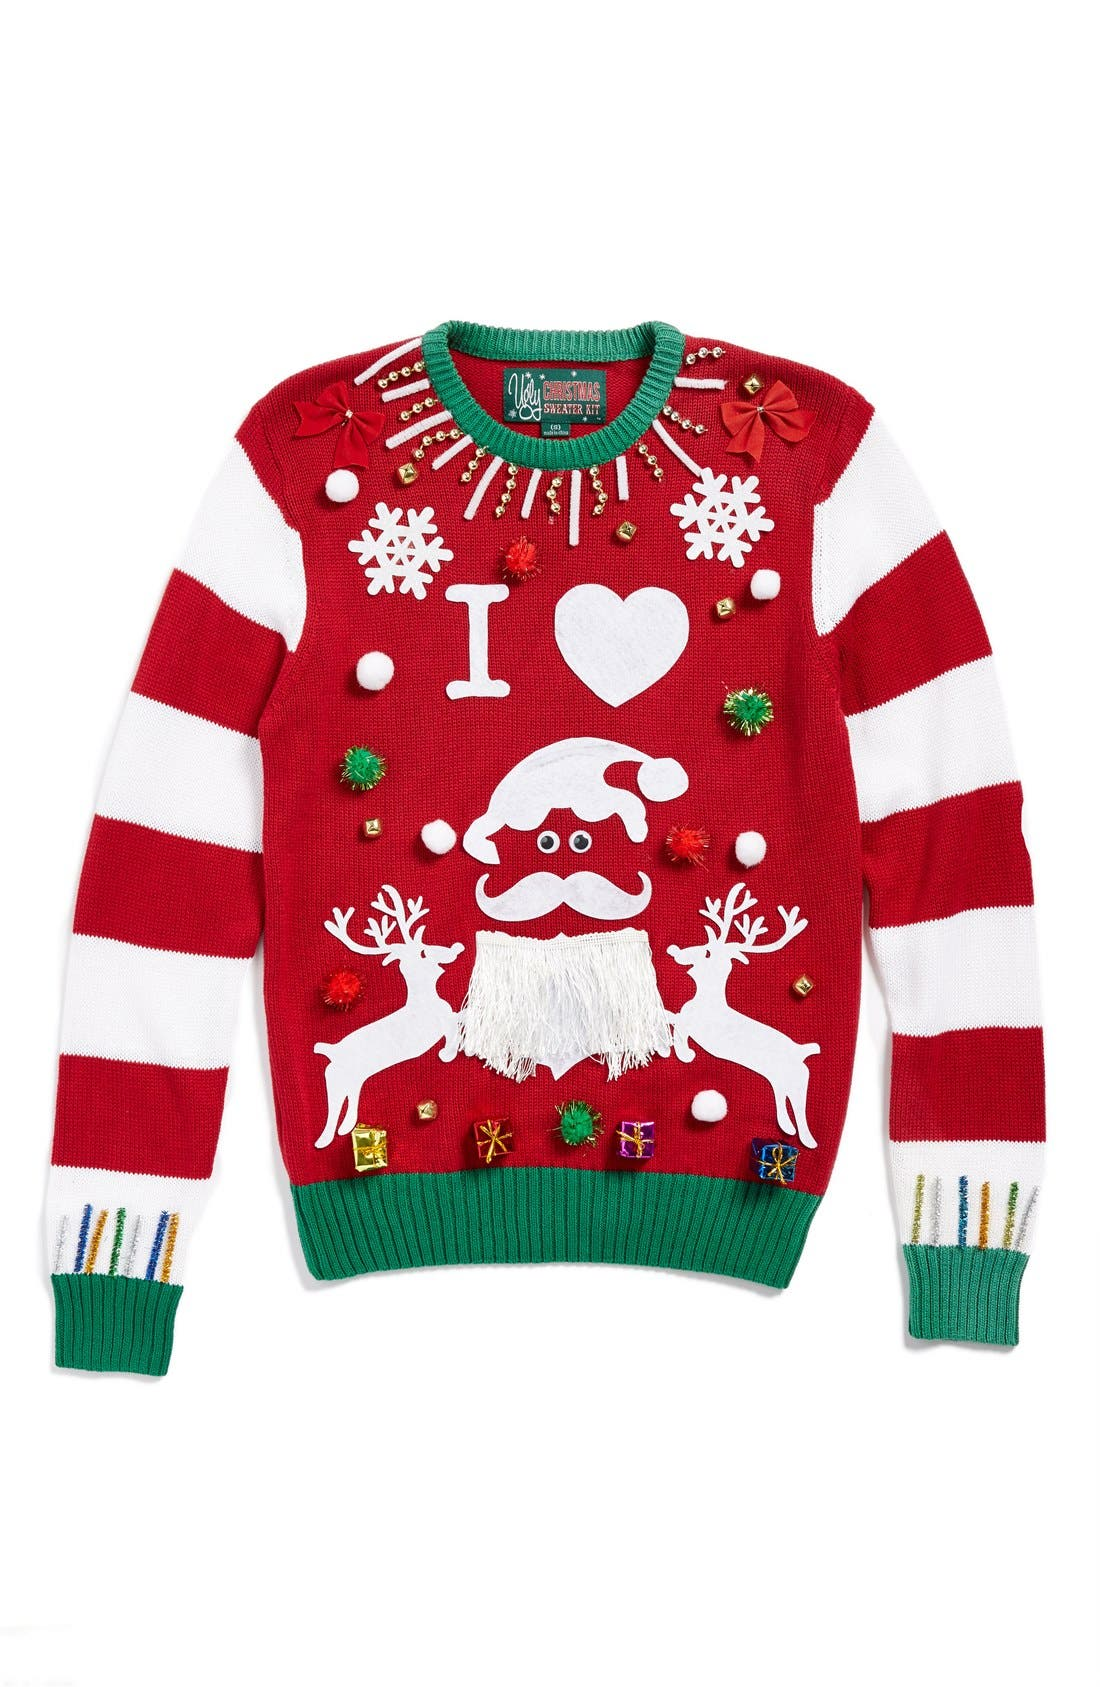 Alternate Image 1 Selected - Ugly Christmas Sweater 'Make Your Own - Red Stripe' Sweater Kit